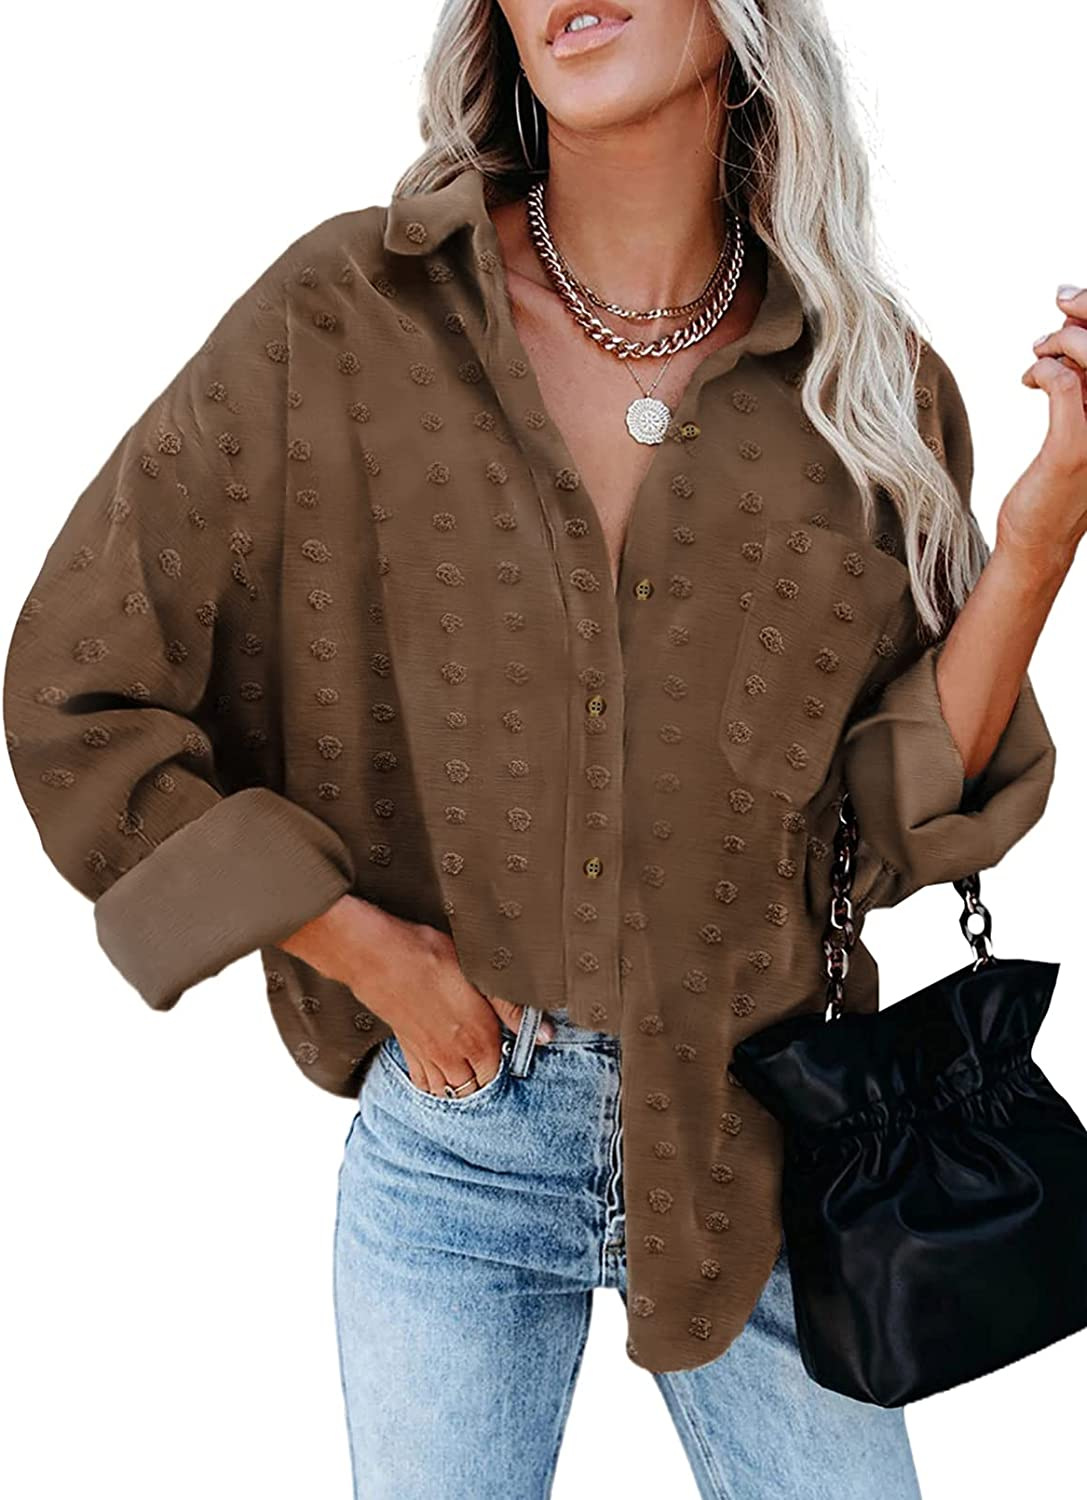 Astylish Womens Long Sleeve Shirts Jacquard Pom Pom Top Solid Color Button Down Blouse with Pockets